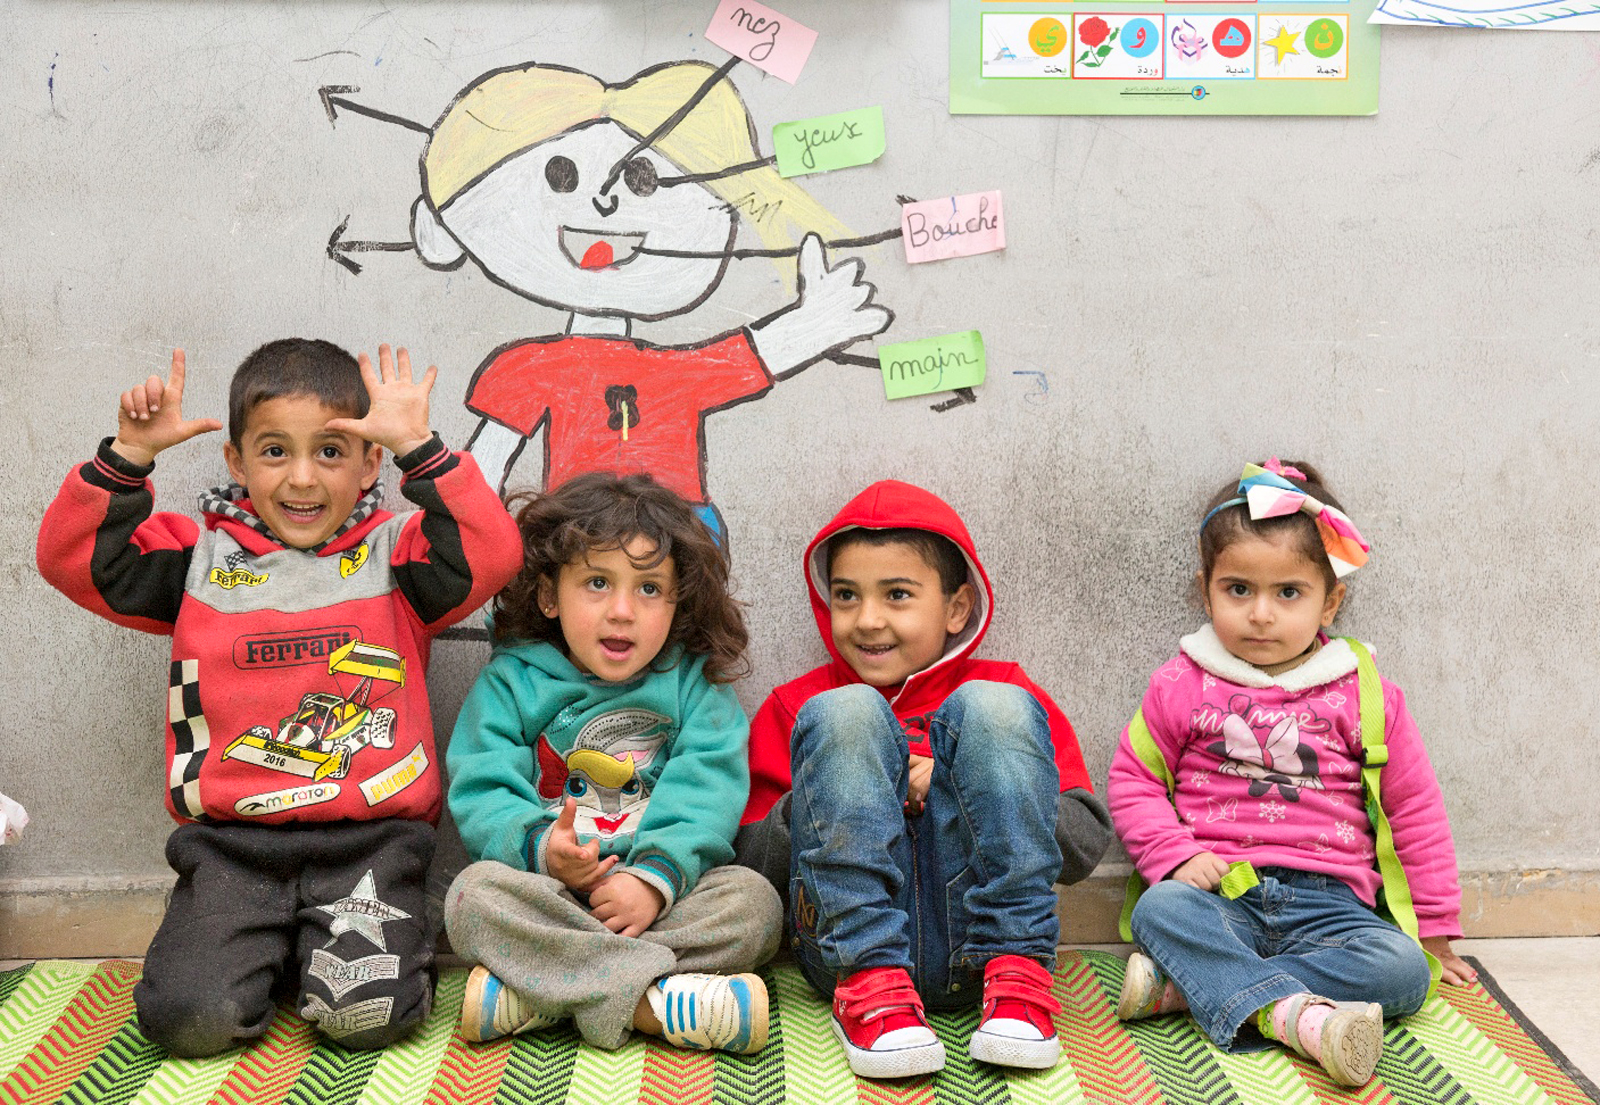 refugee children at school in Lebanon